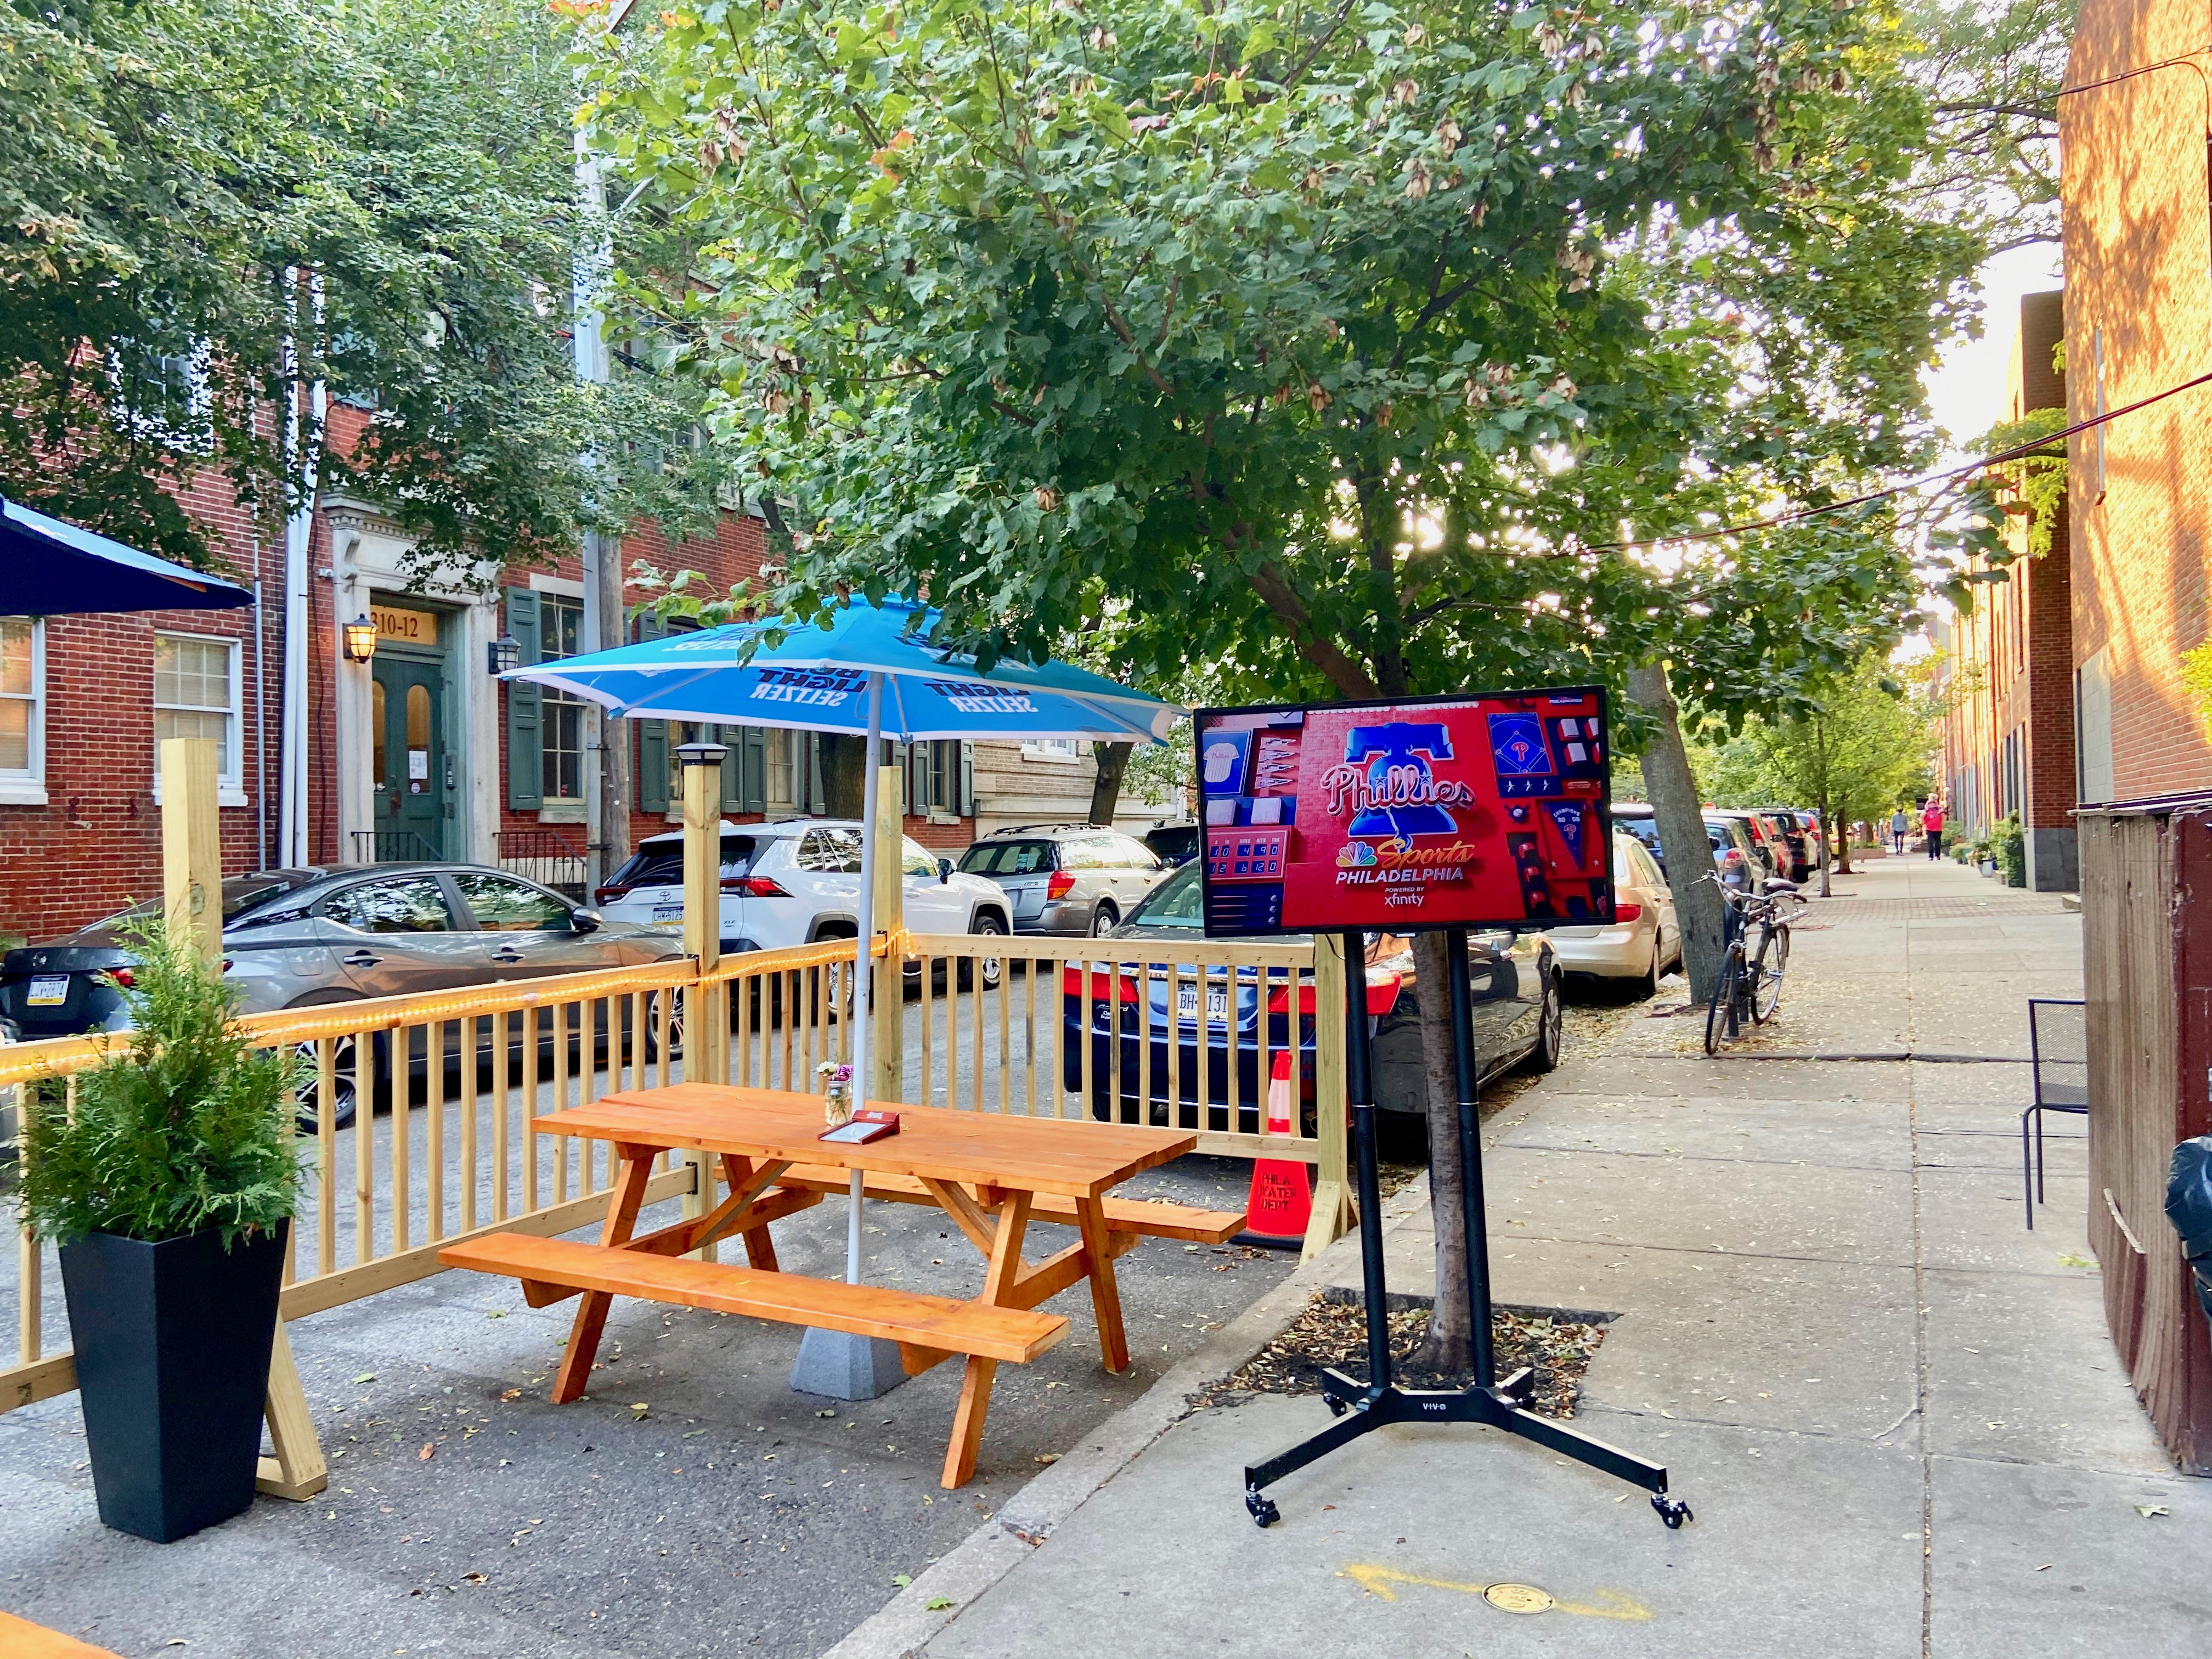 picnic table with umbrella next to a TV on a city street with trees